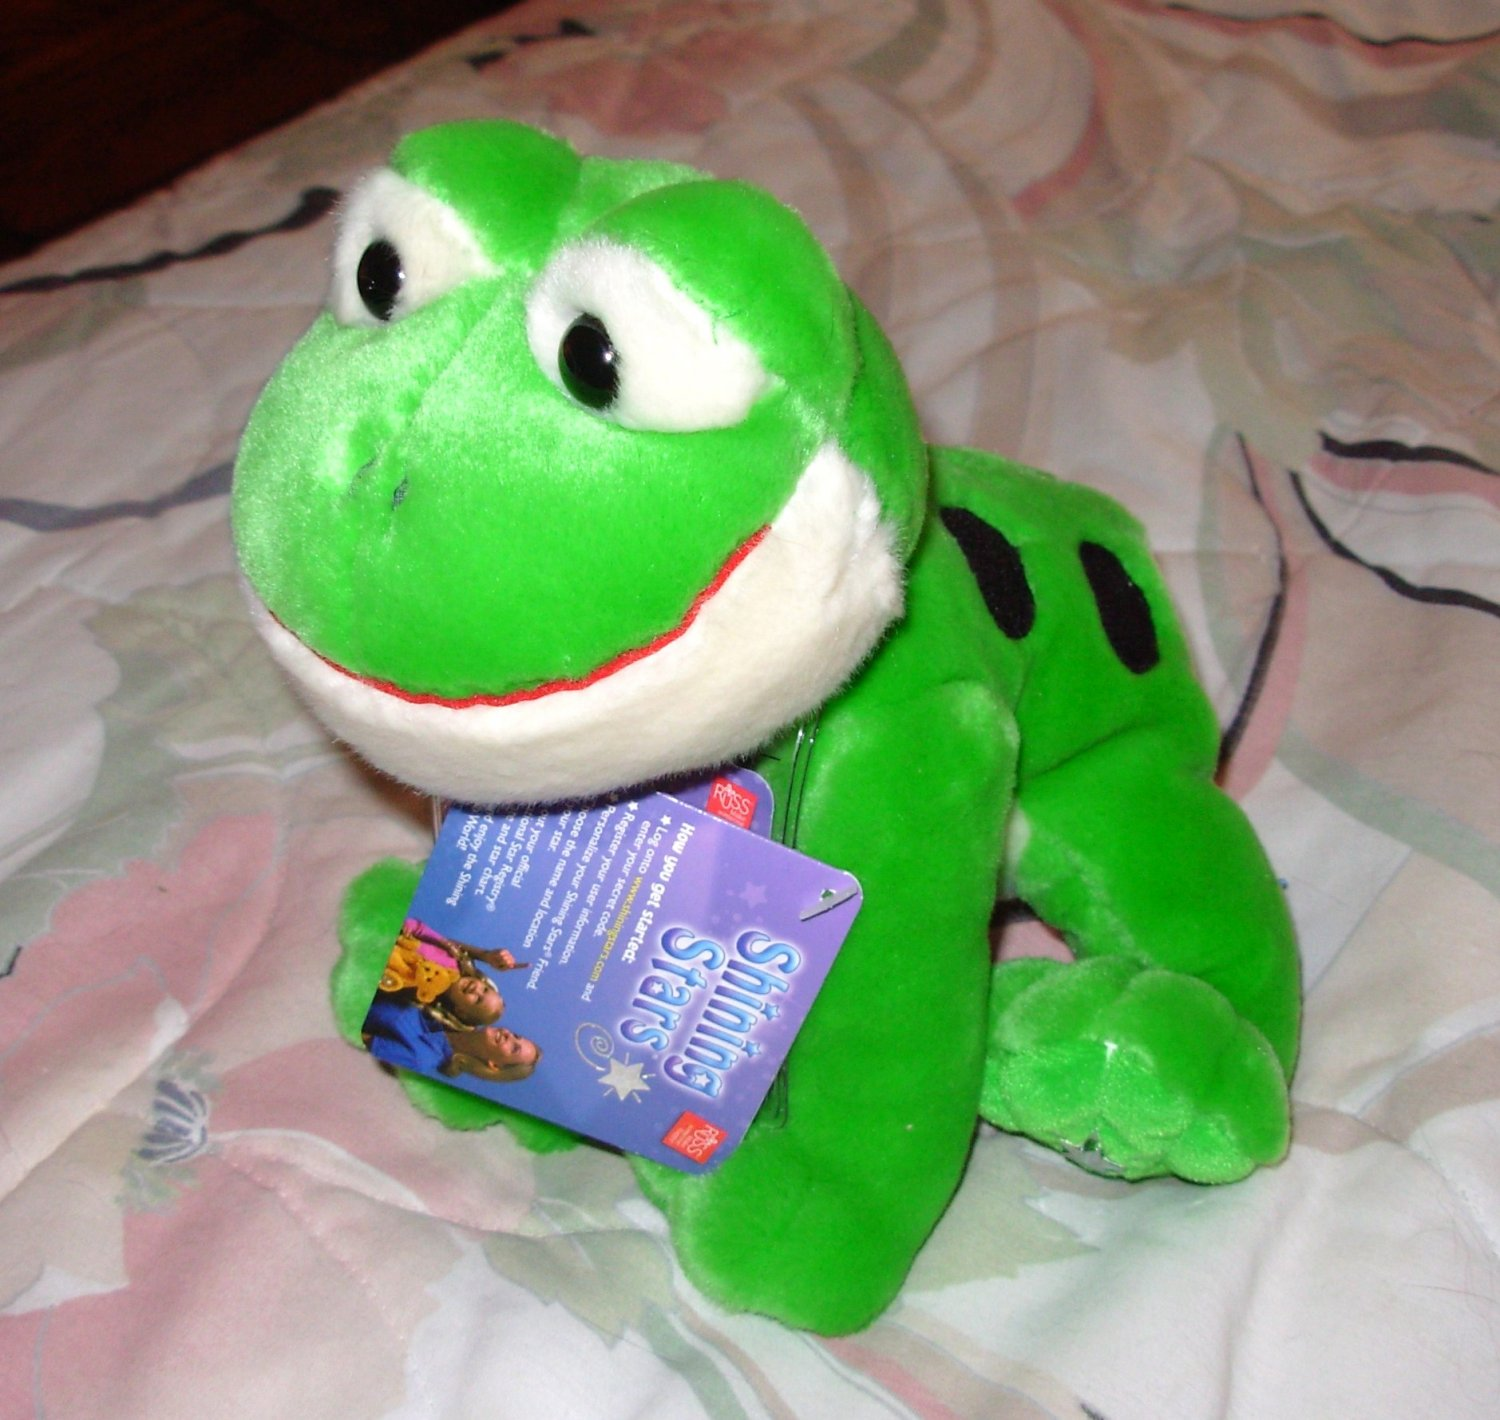 SHINING STAR FROG VIRTUAL PET NEW RUSS BERRIE STUFFED PLUSH ANIMAL